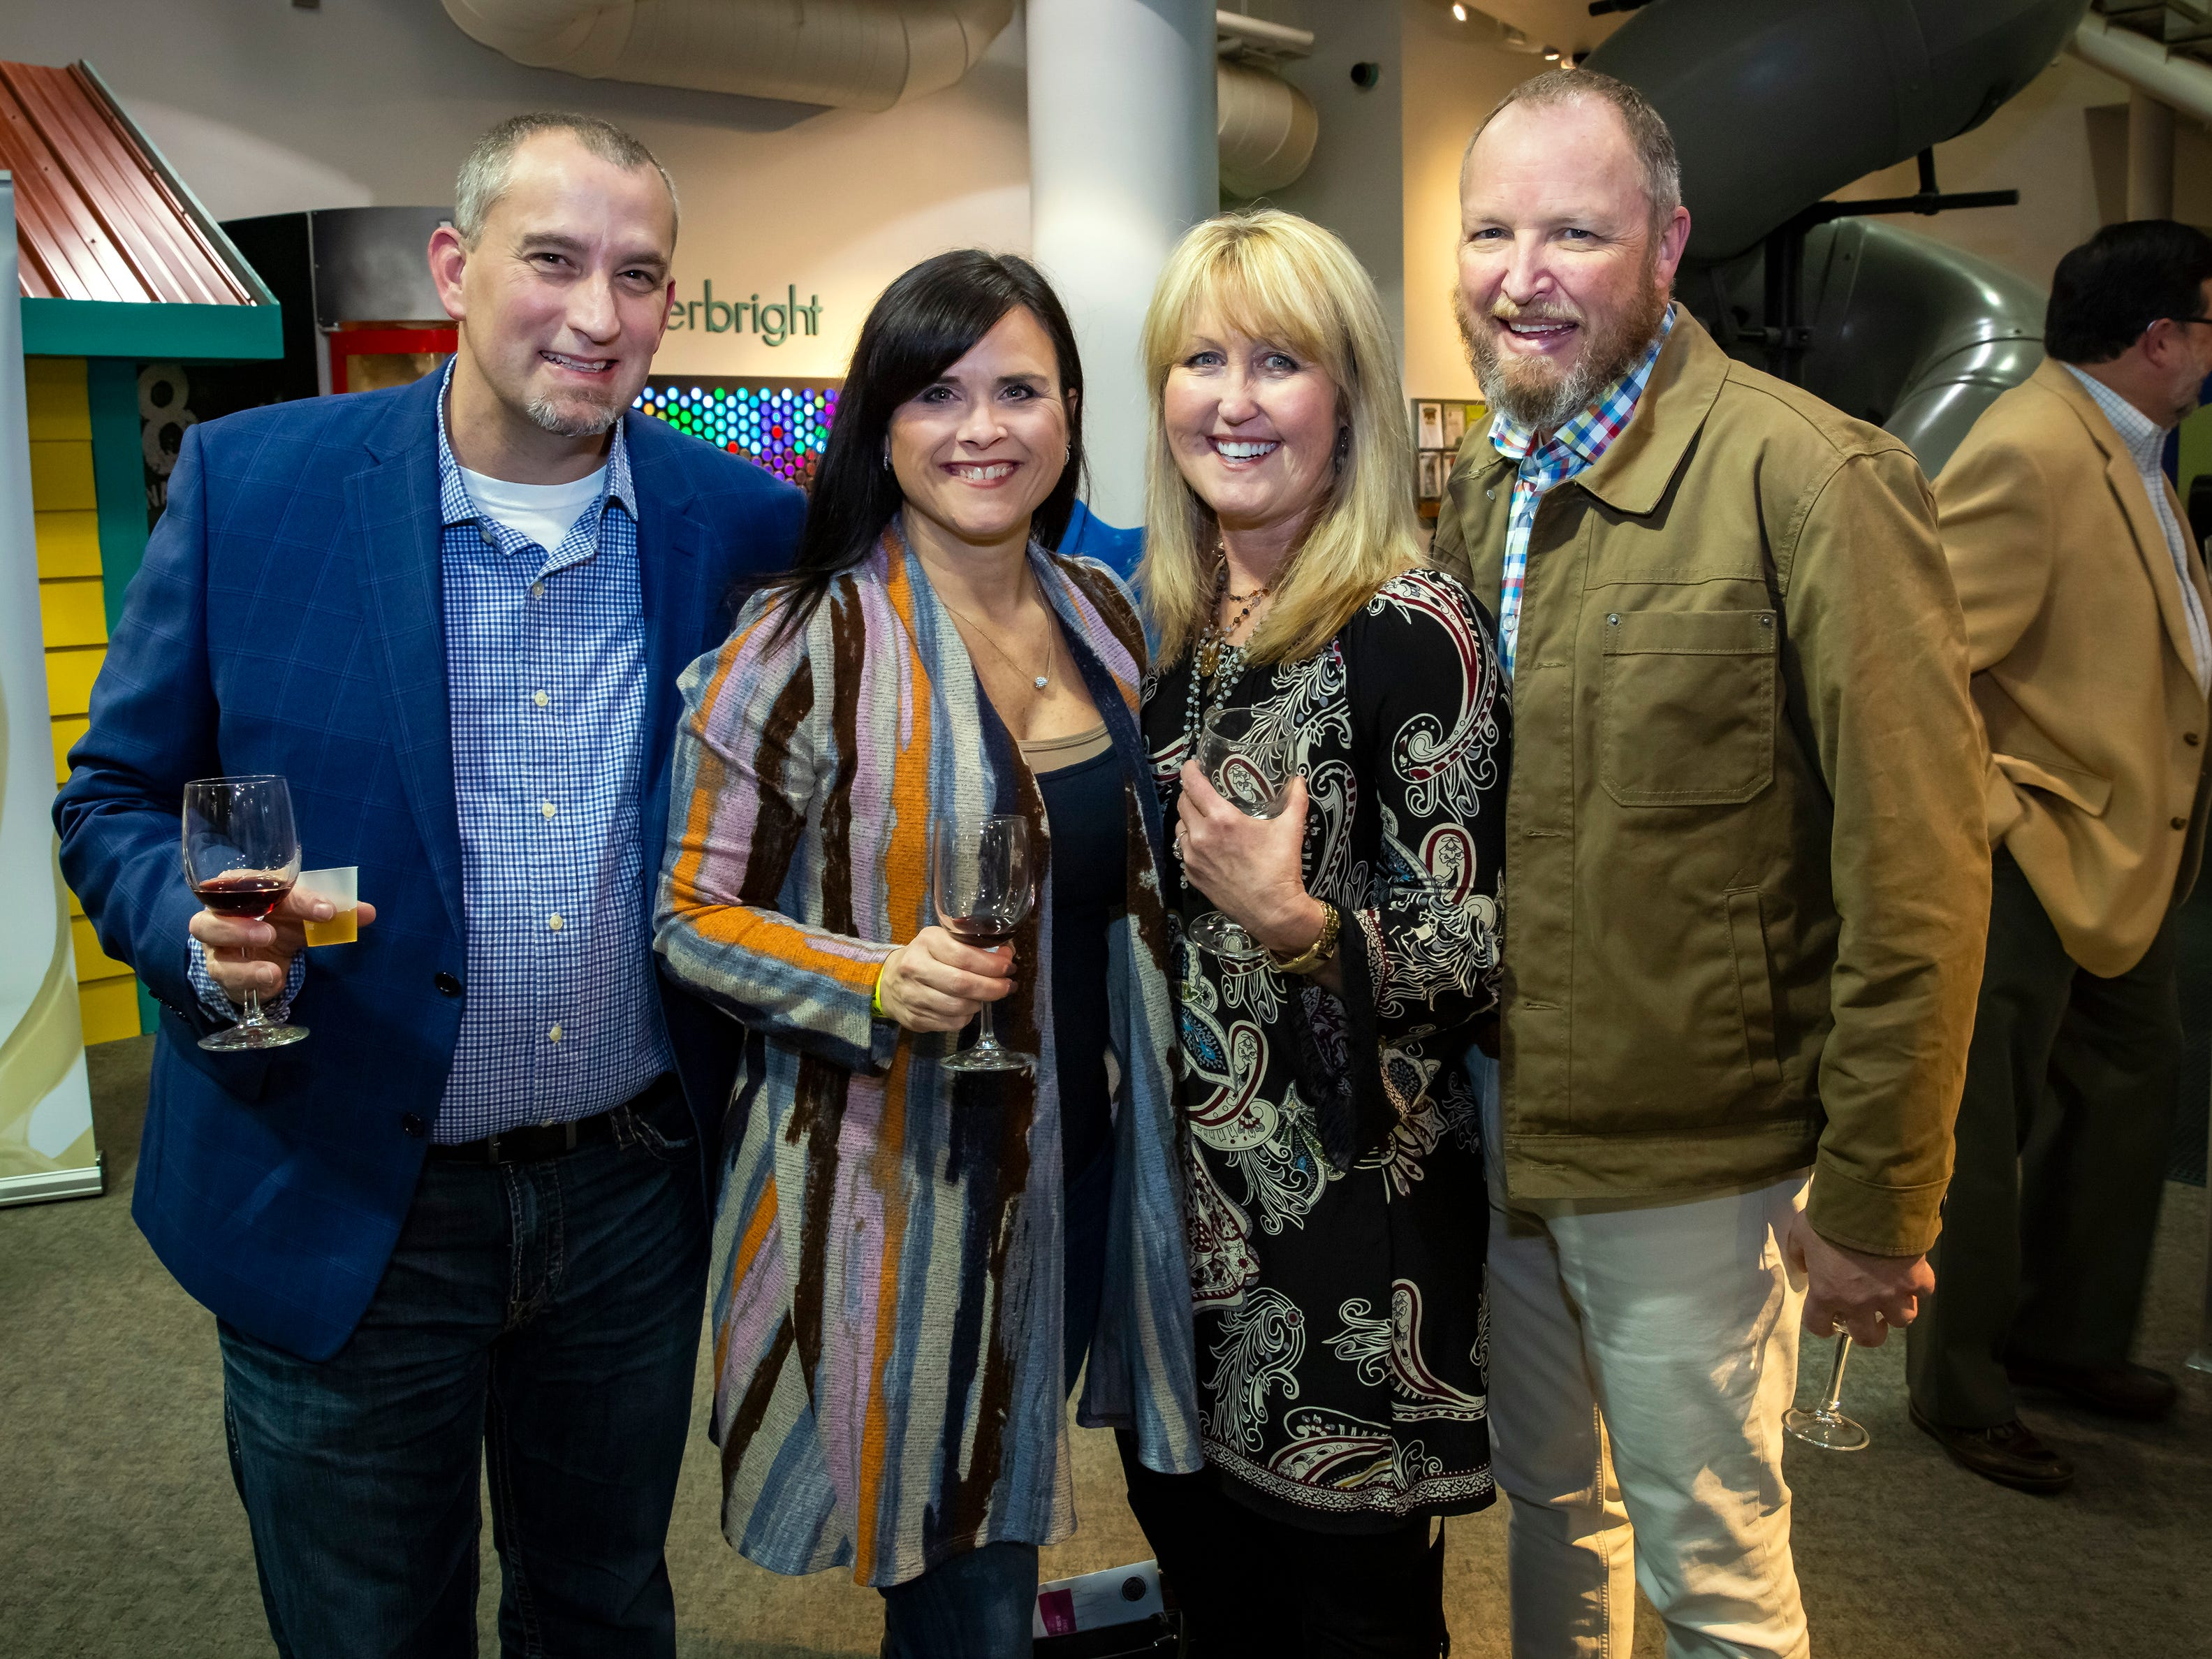 Rob and Angela Lyles along with Karen McMahon and Glen Linthicum at the 6th annual Wine and Whiskey at the Wetlands event held at the Discovery Center.